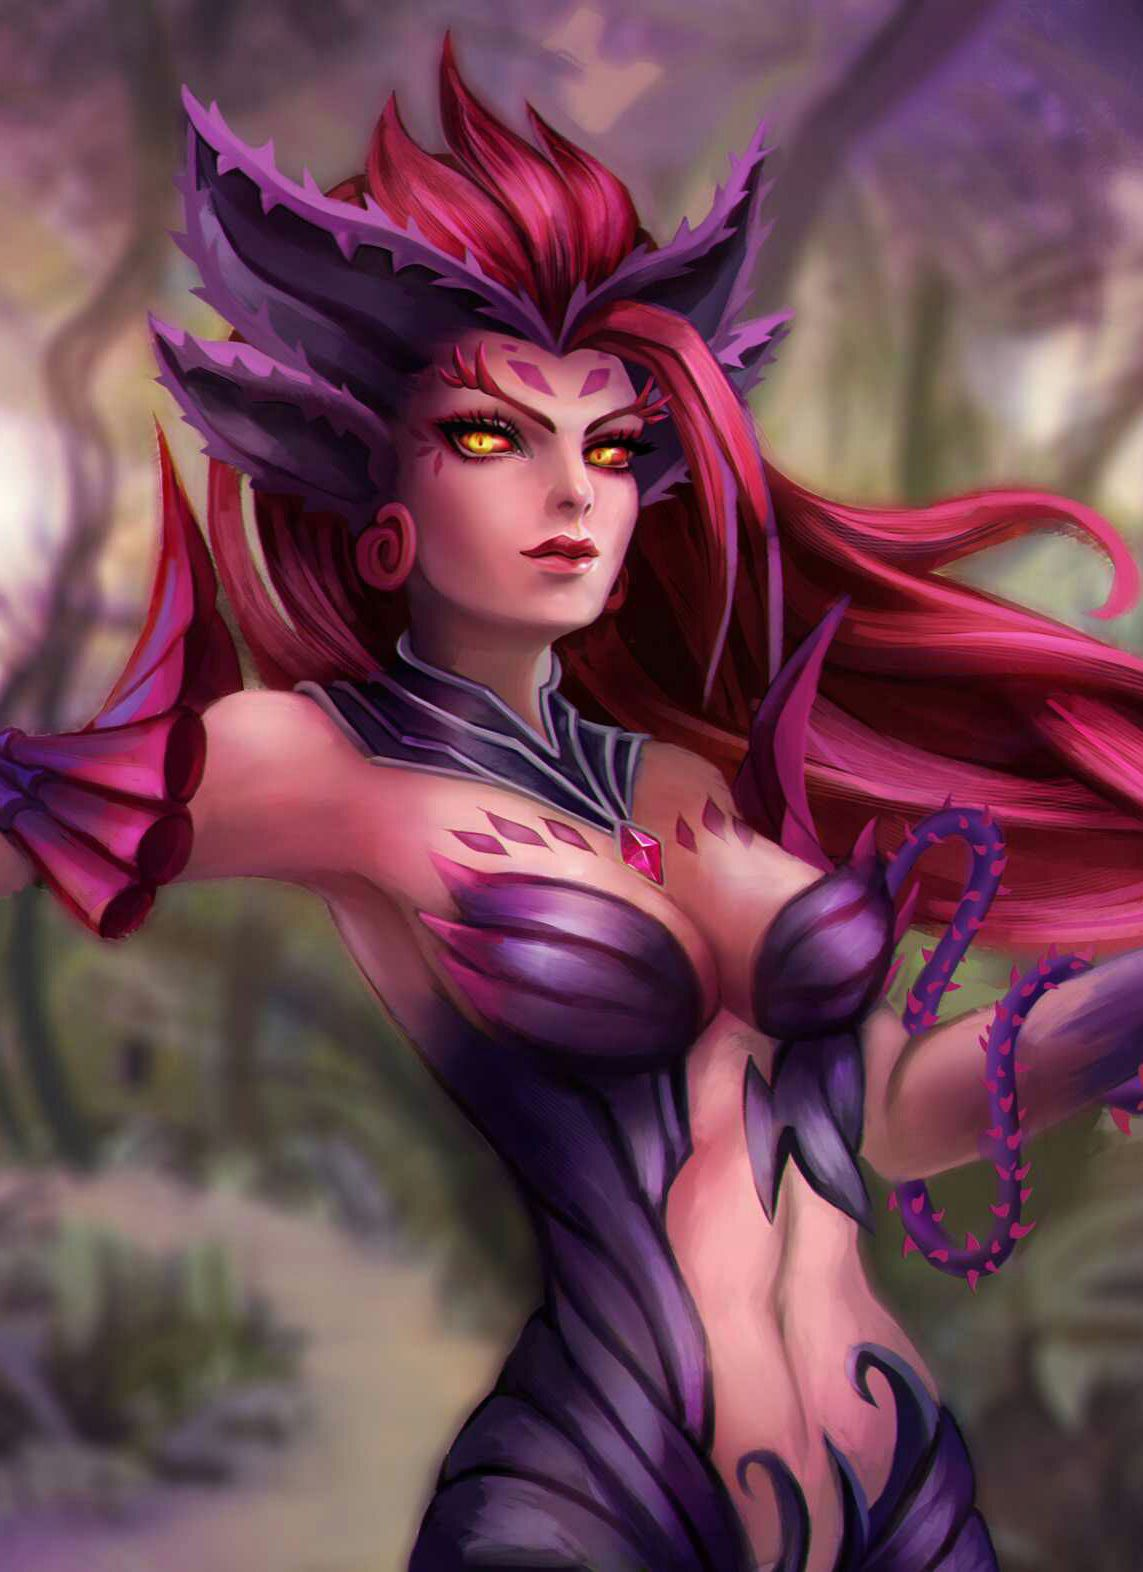 Zyra Hd Wallpapers 1920x1080 League Of Legends In 2021 Lol League Of Legends Zyra League Of Legends League Of Legends Coven zyra league of legends wallpaper